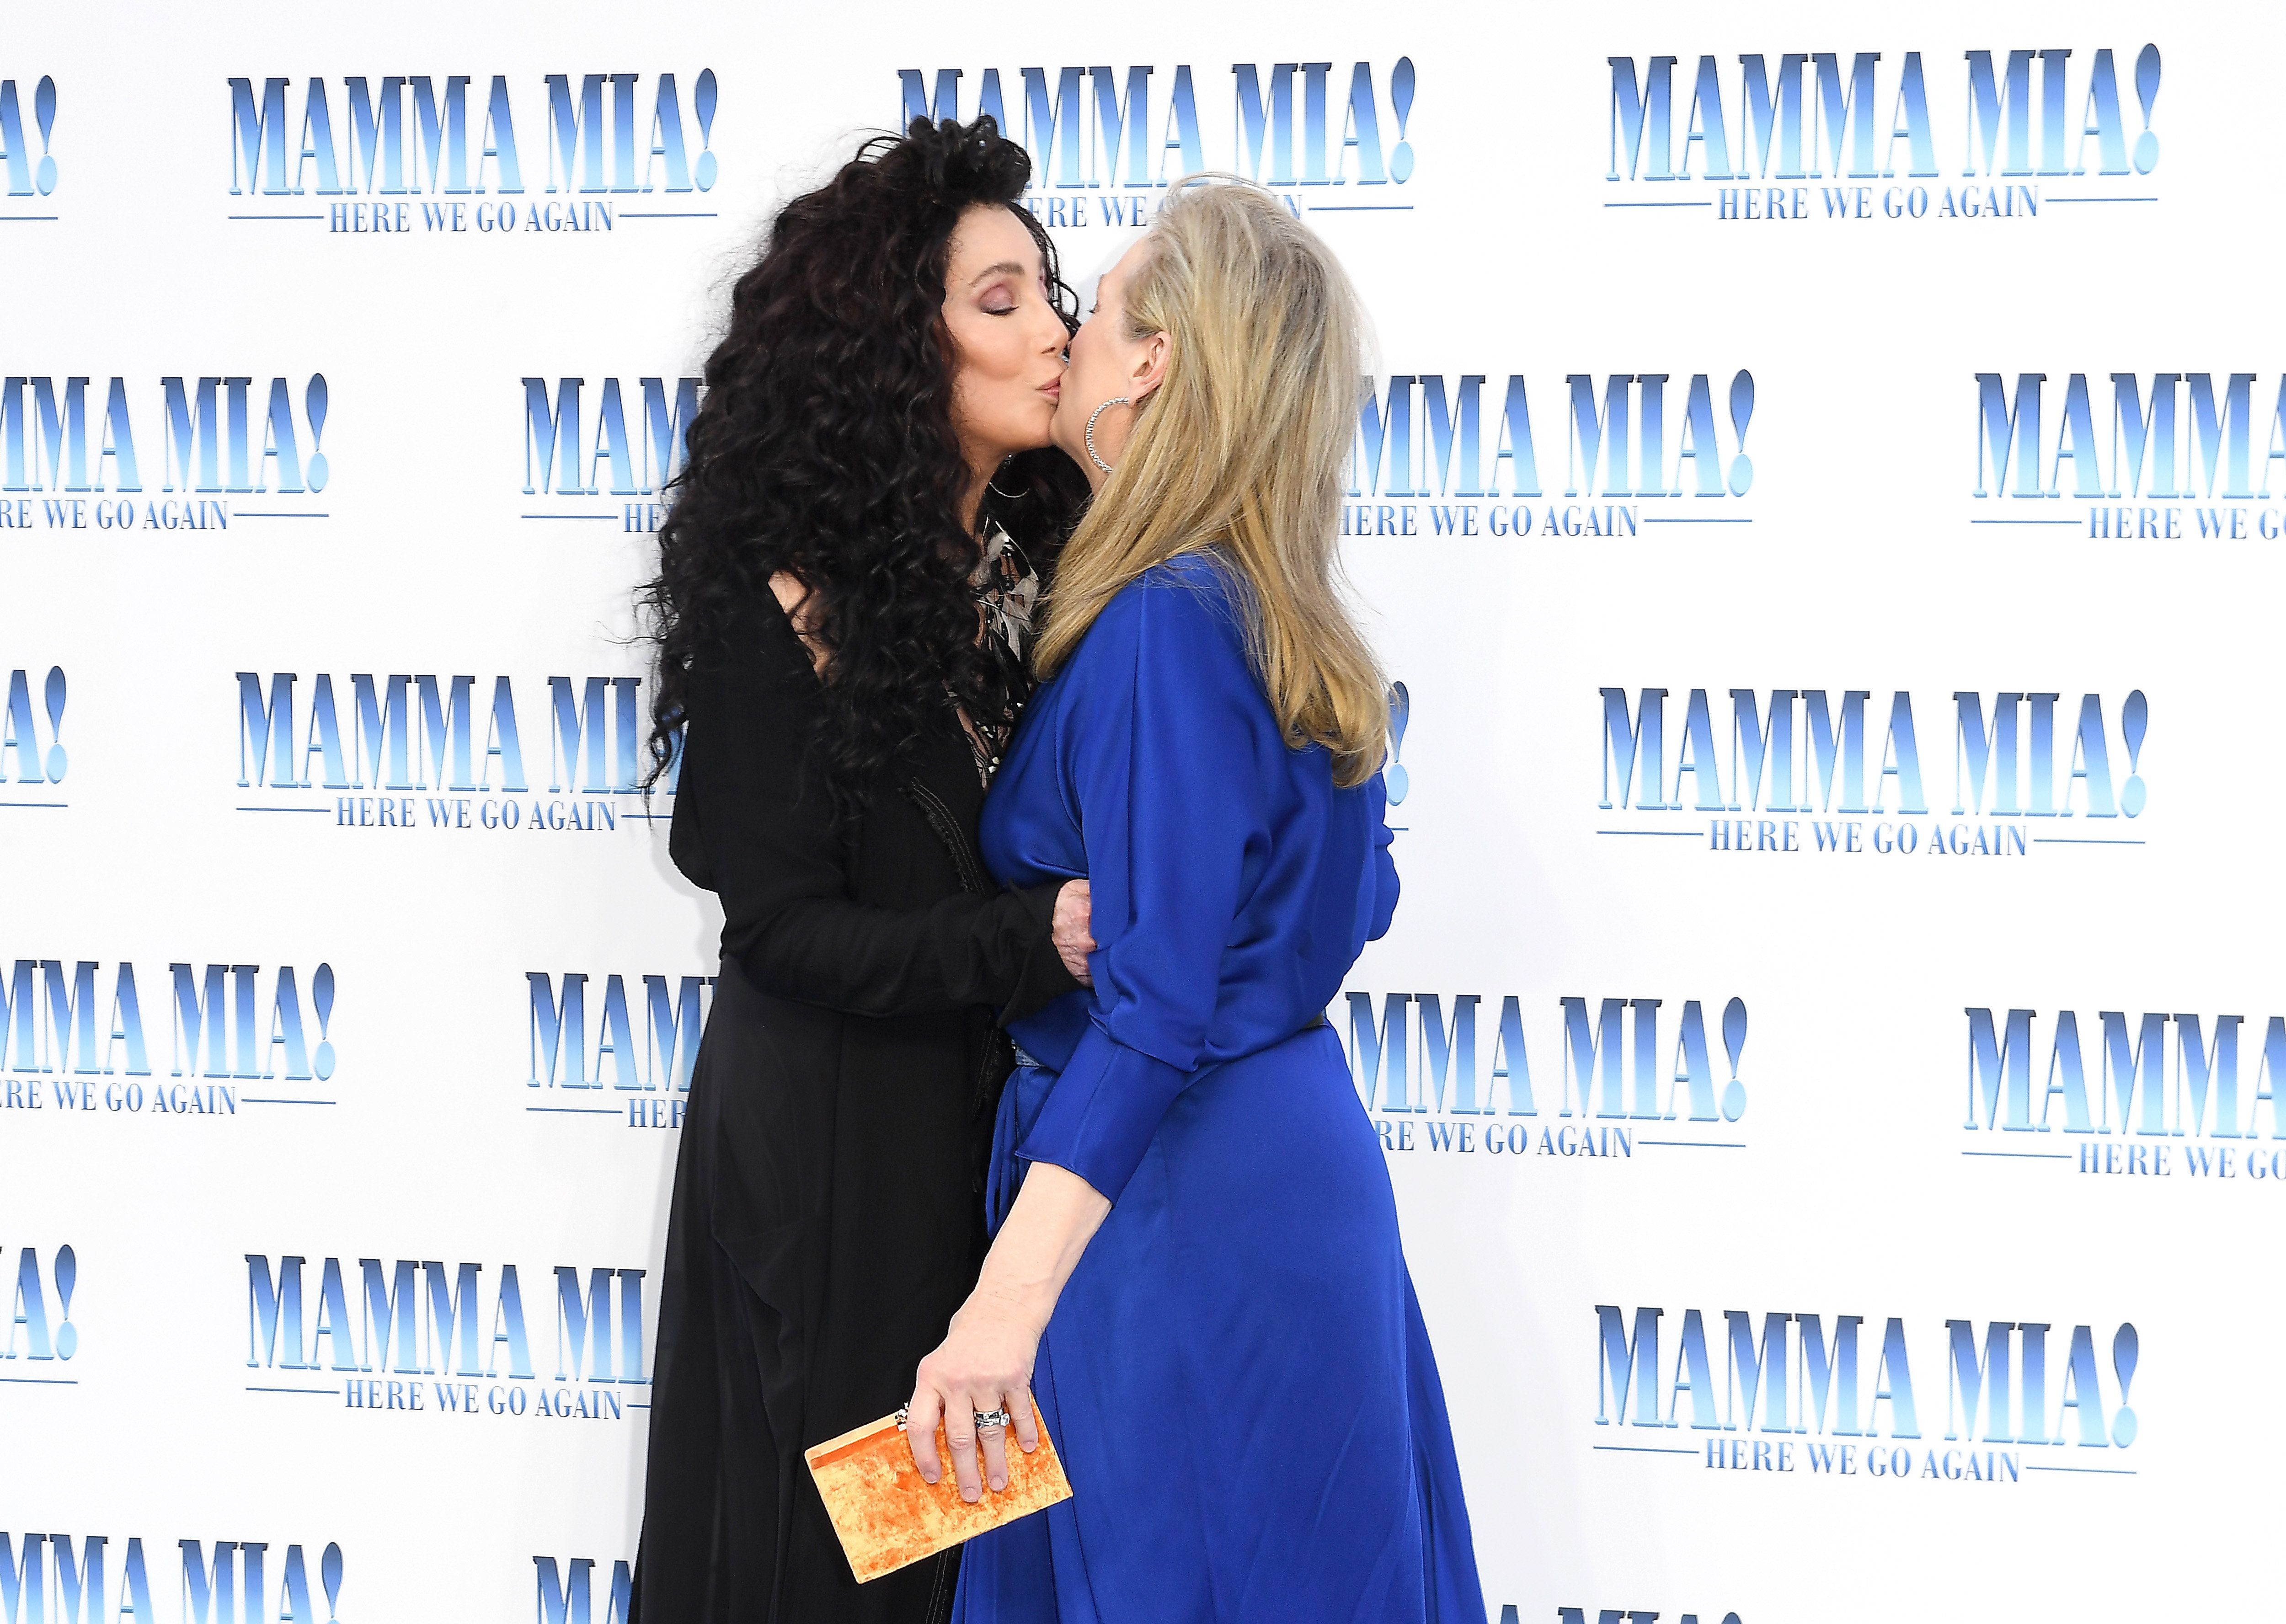 Meryl Streep And Cher Kissed At The Mamma Mia 2 Premiere, And Now It's A Meme